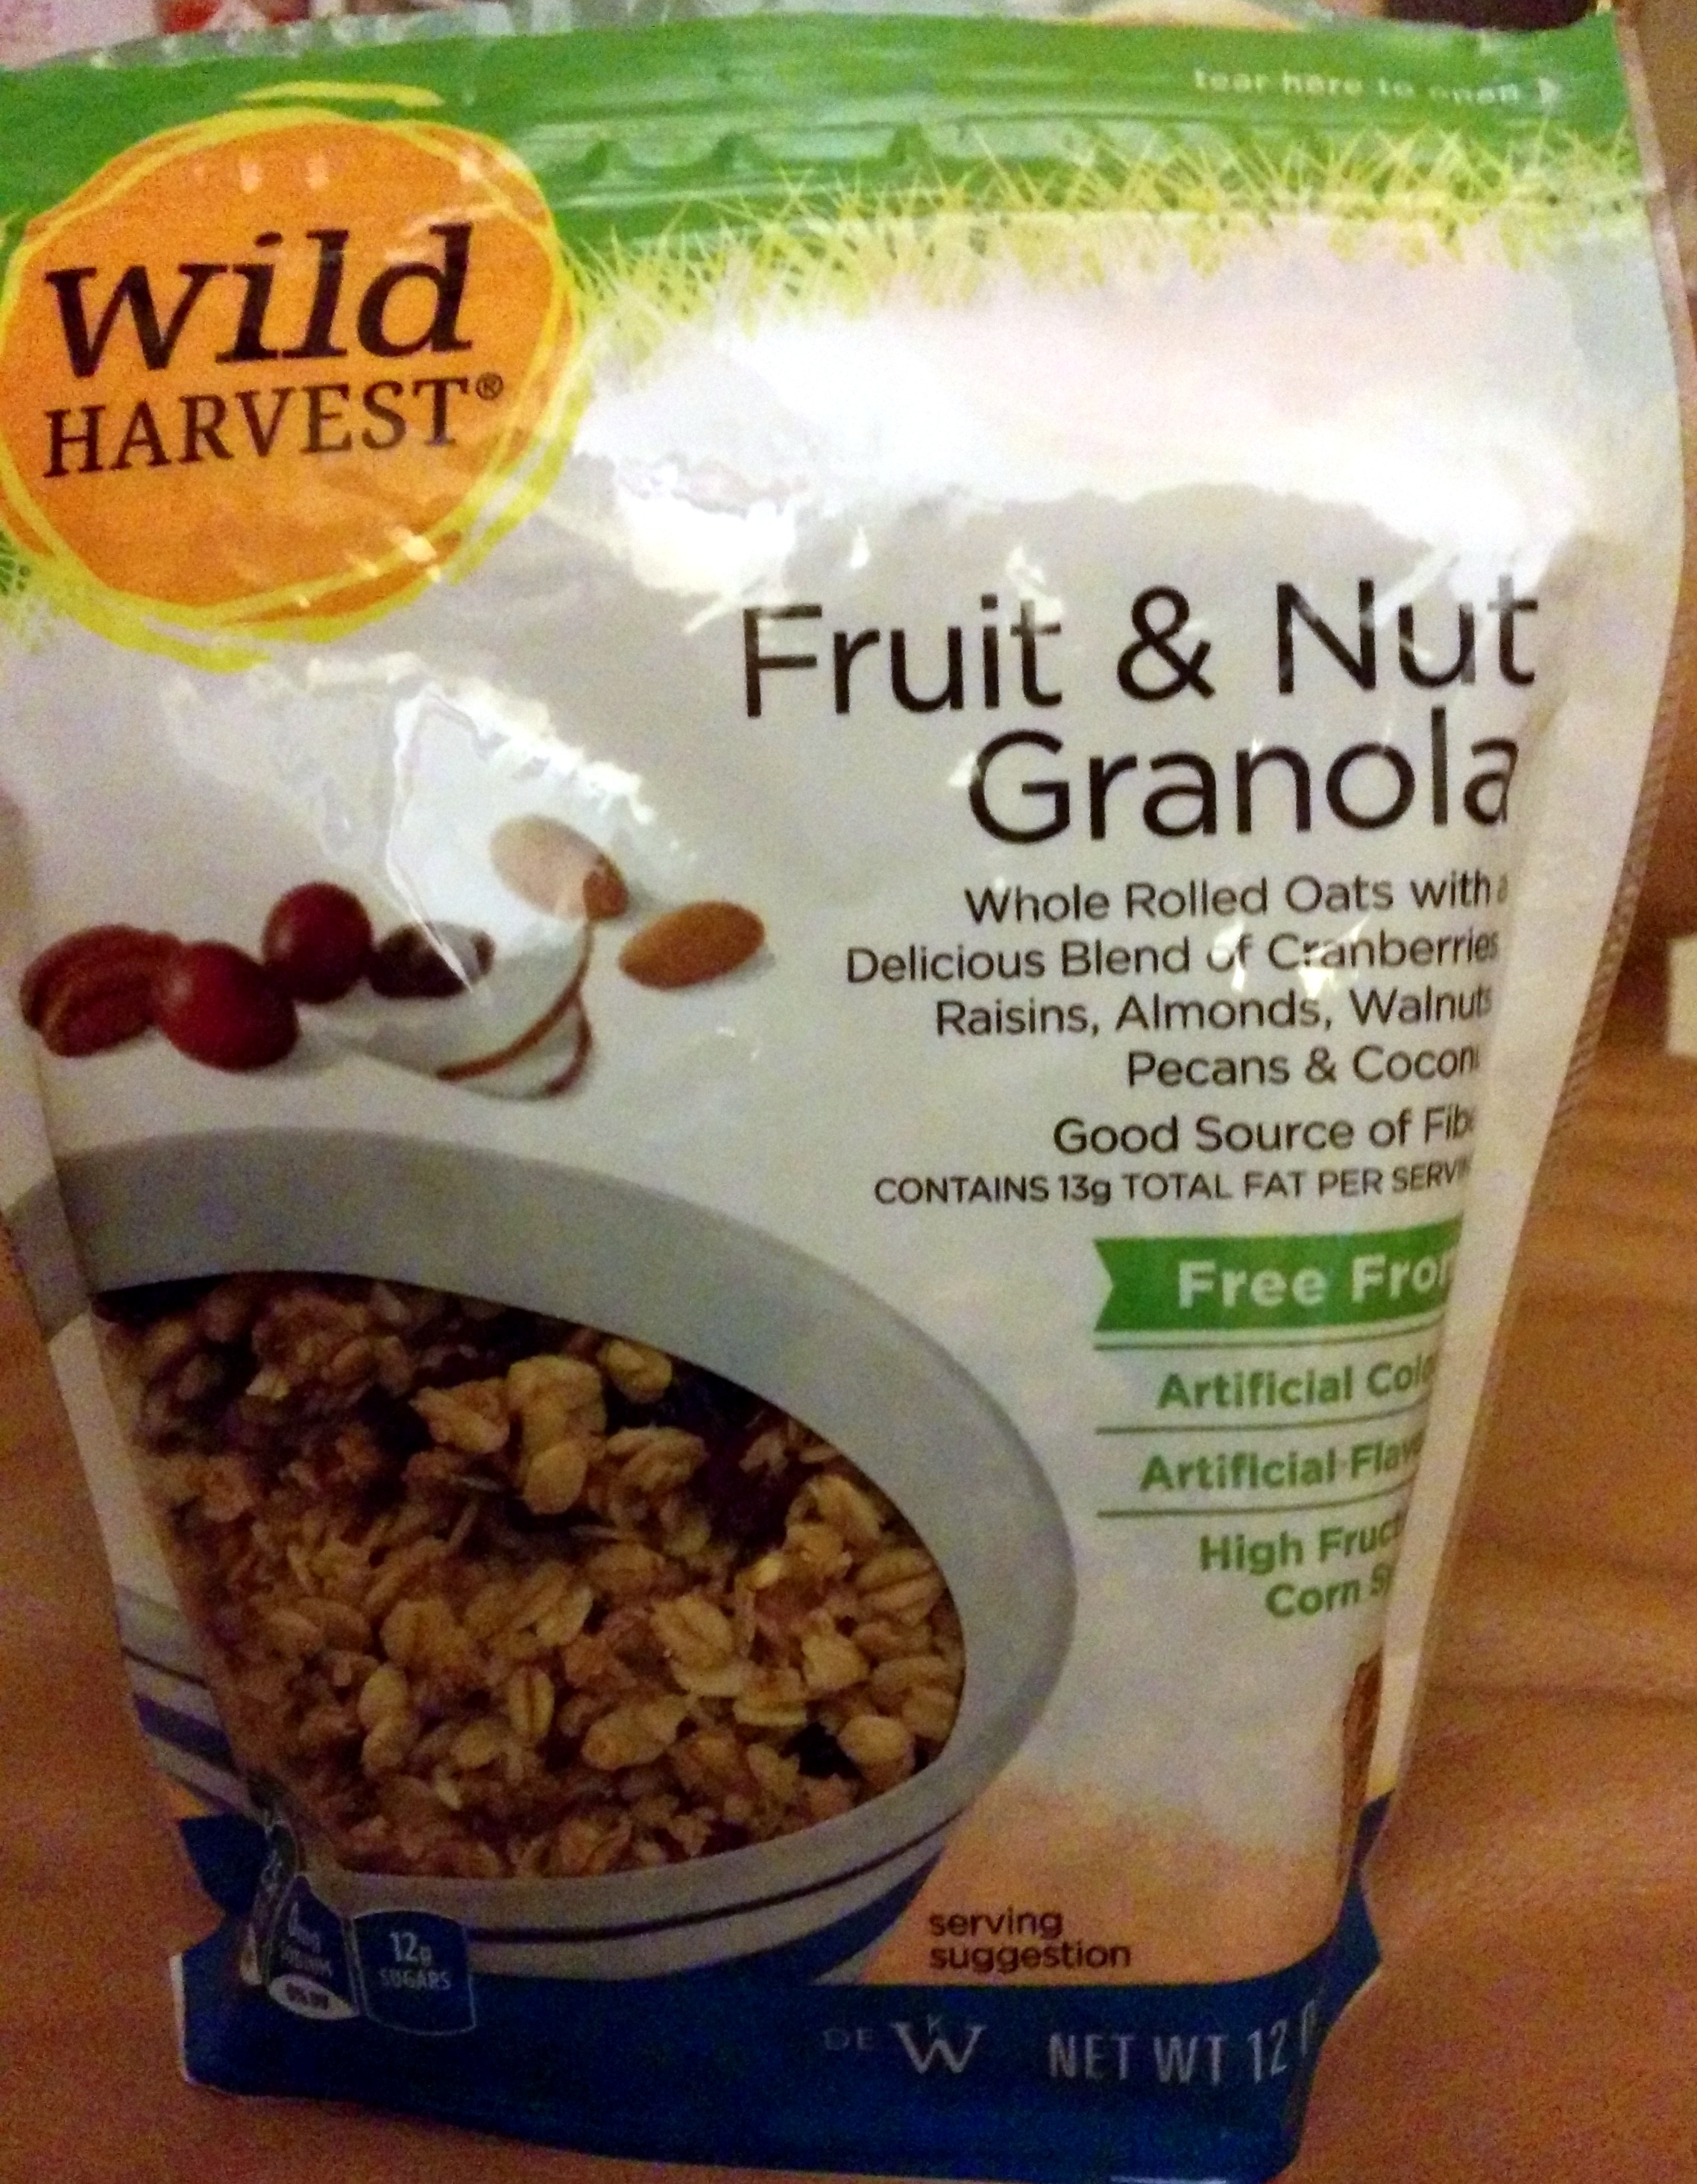 Fruit & Nut Granola - Product